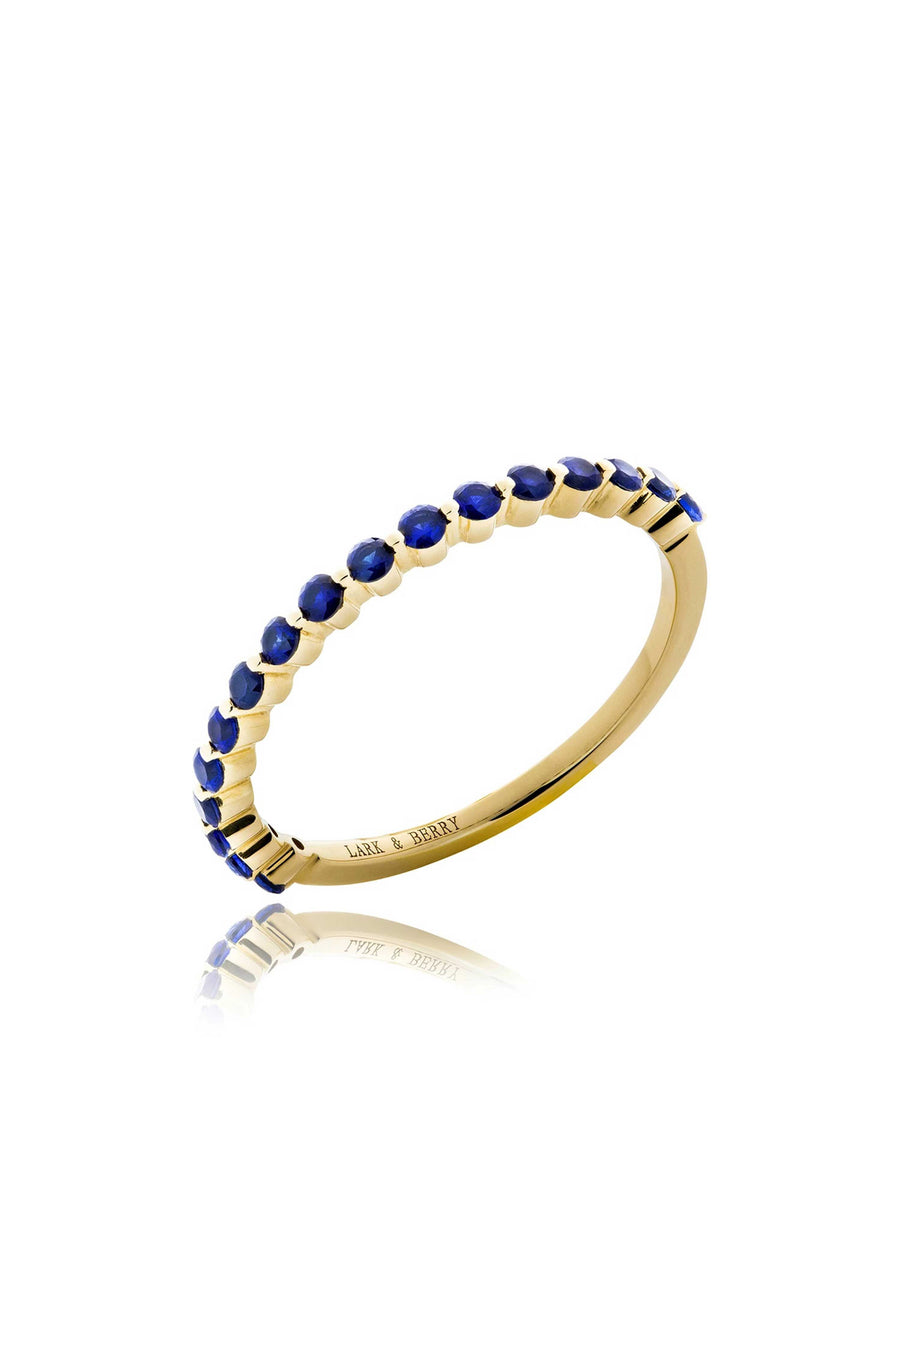 Modernist Stackable Blue Sapphire Ring in 14K Gold